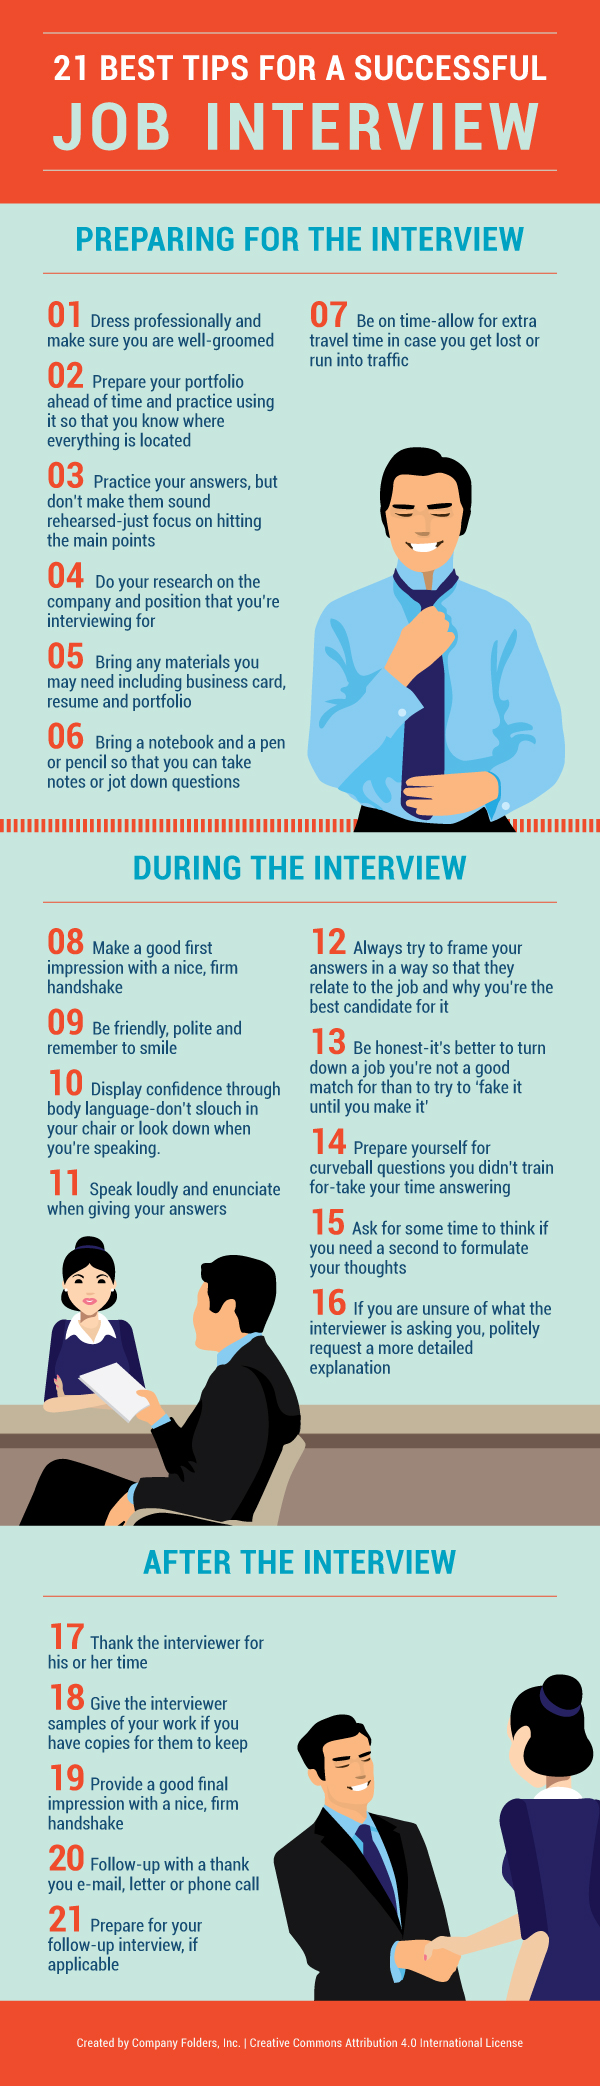 22 graphic design job interview tips questions answers graphic design interview tips